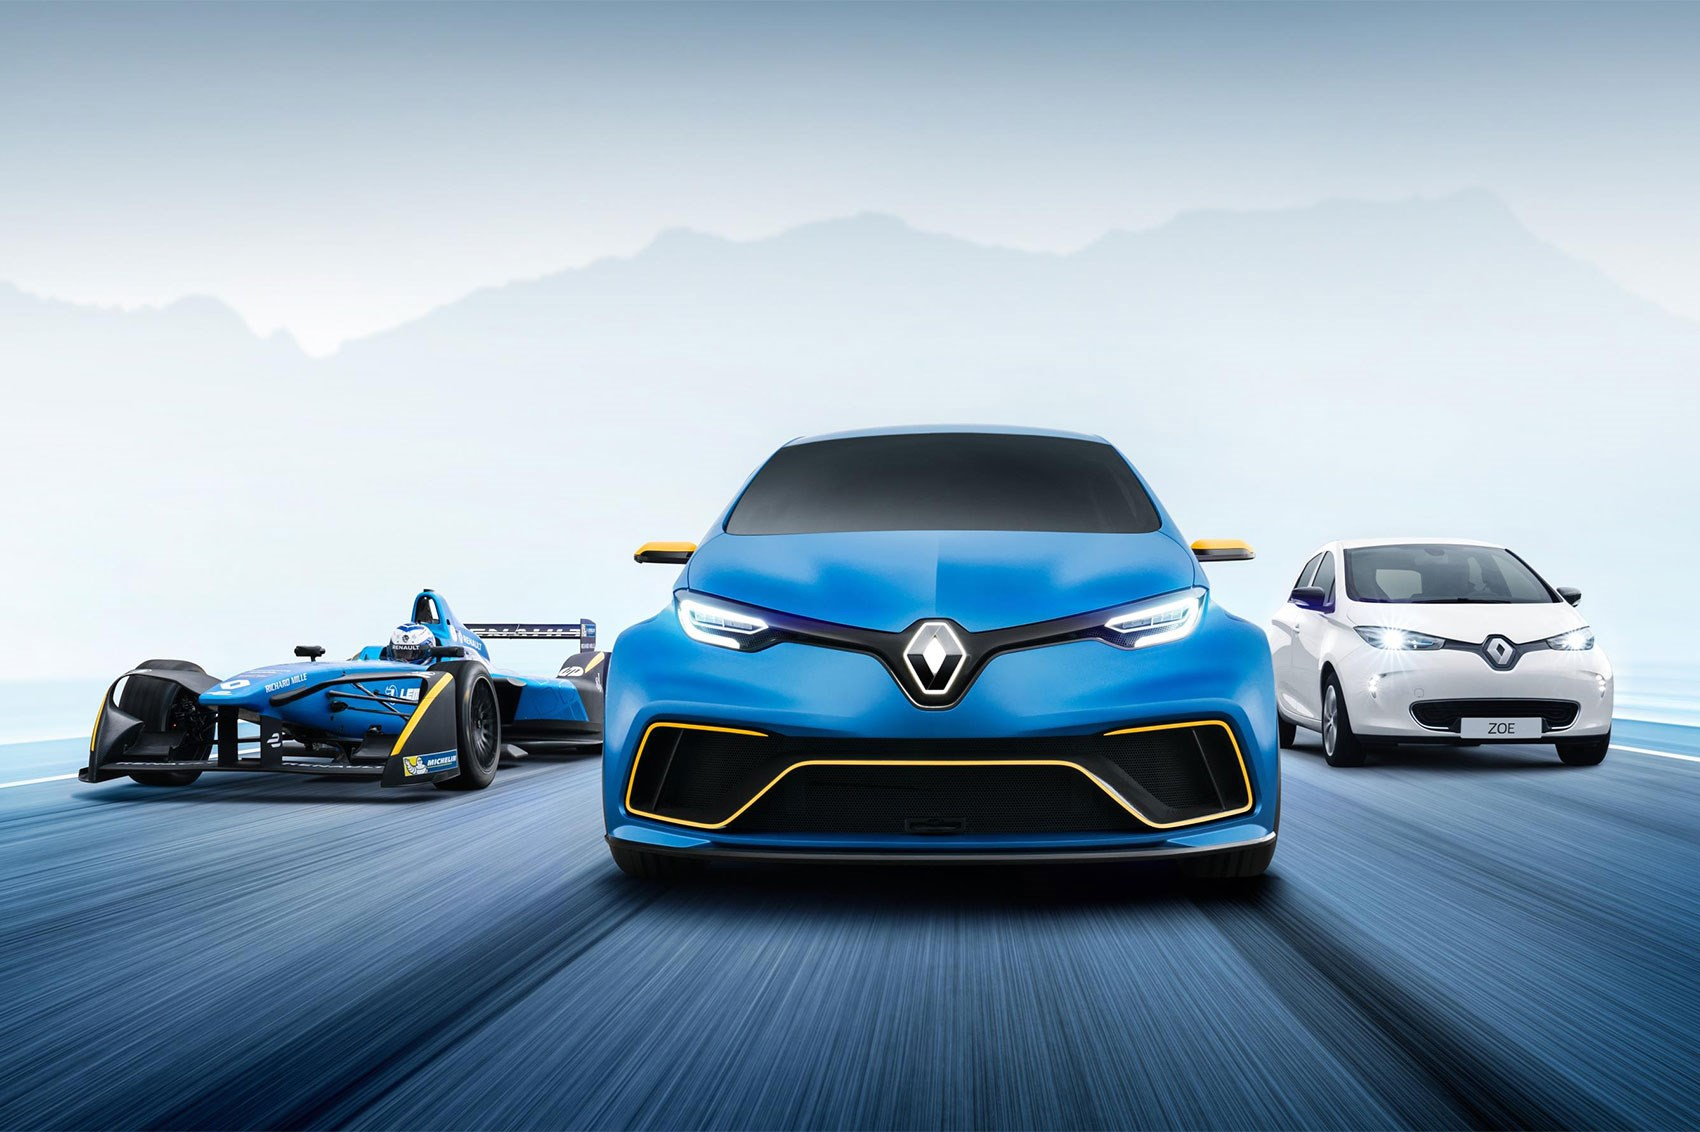 renault zoe e sport muscles up with 460bhp ev hyper hatch by car magazine. Black Bedroom Furniture Sets. Home Design Ideas